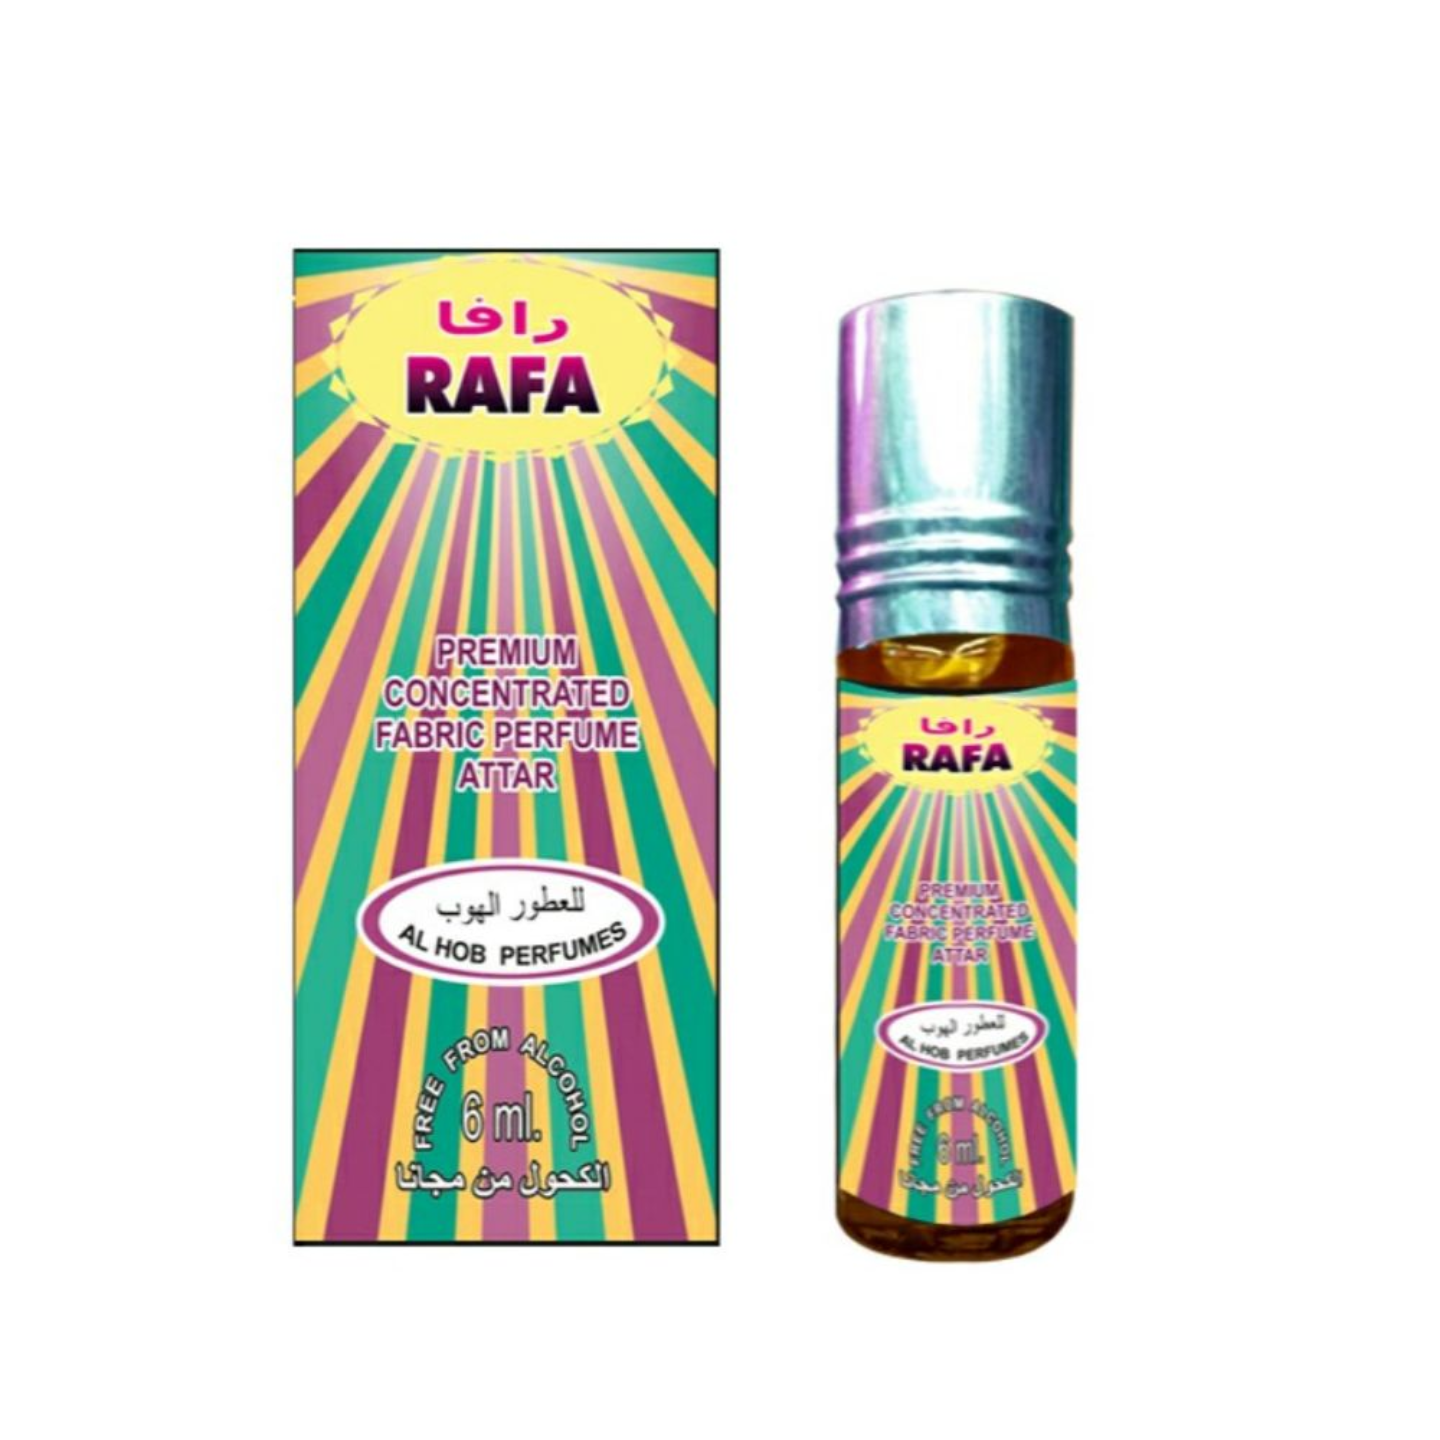 RAFA ATTAR BY AL HOB PERFUMES